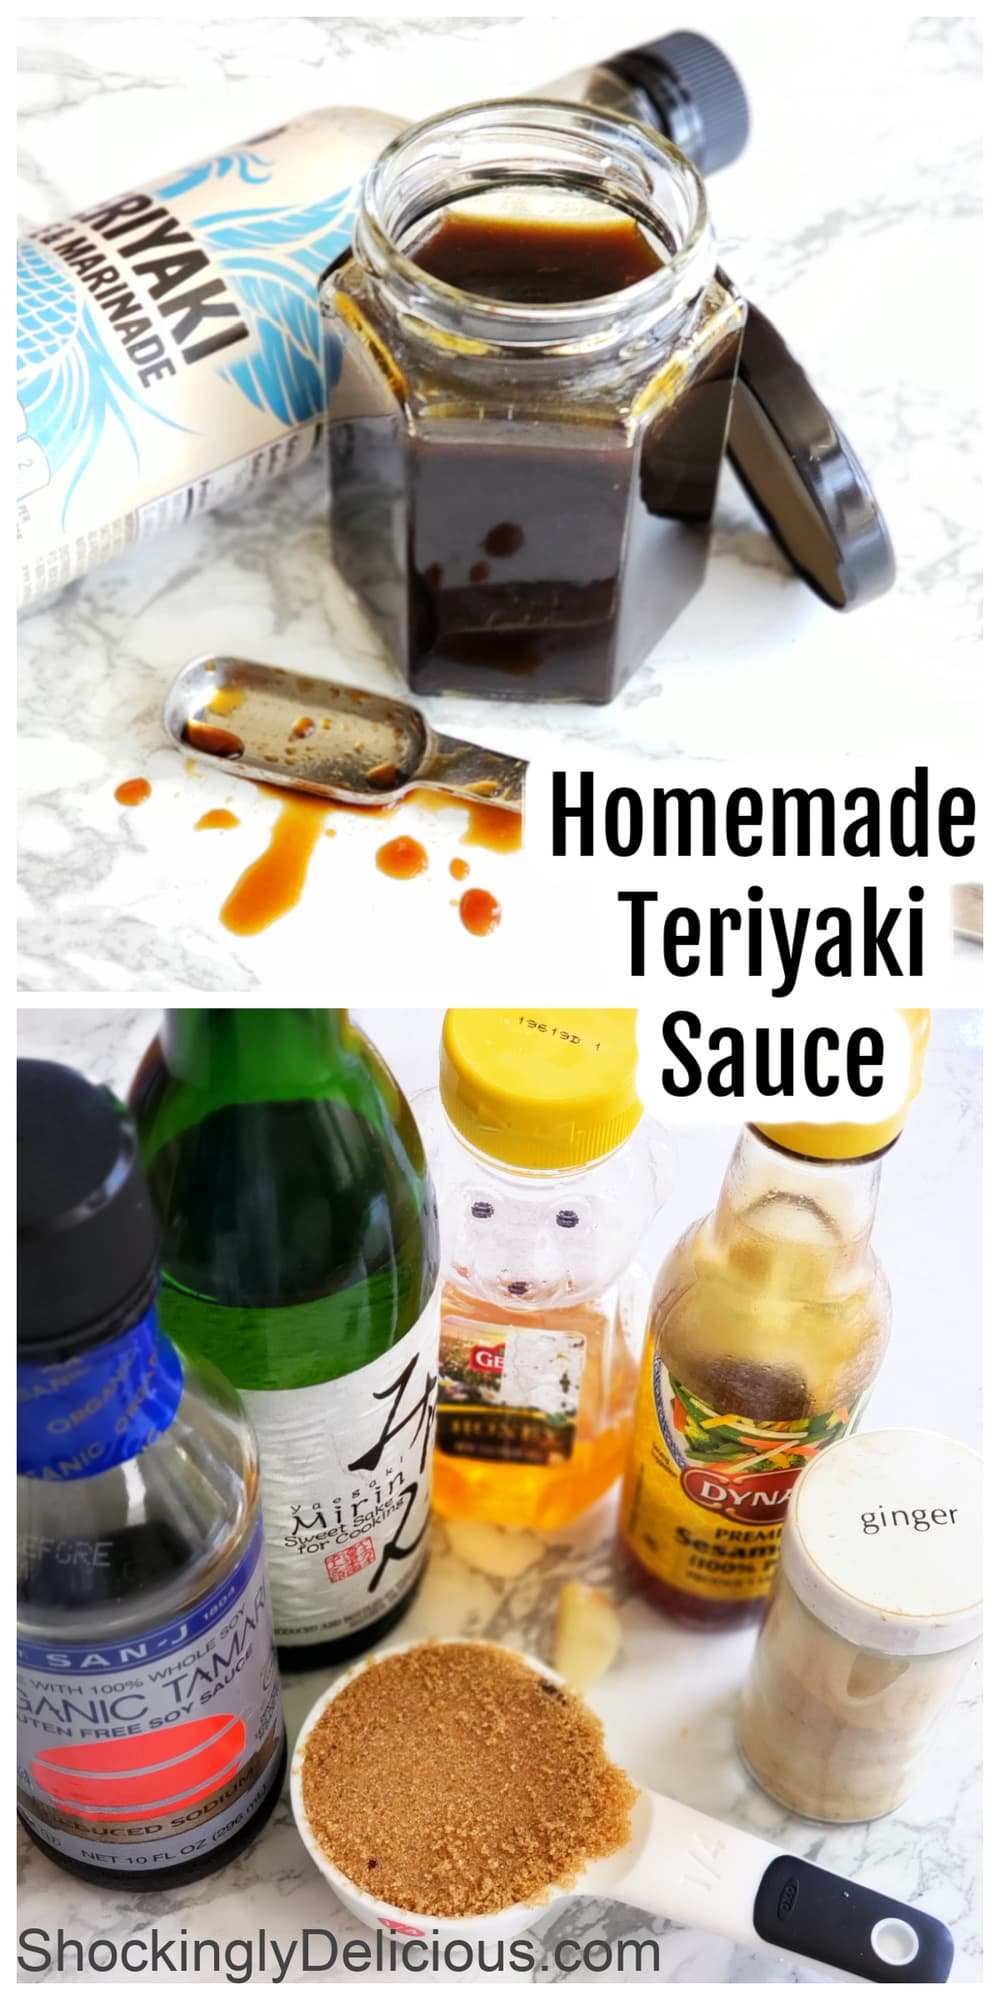 Photo collage of ingredients for Homemade Teriyaki Sauce and finished product in a glass jar on white counteriyaki Sauce